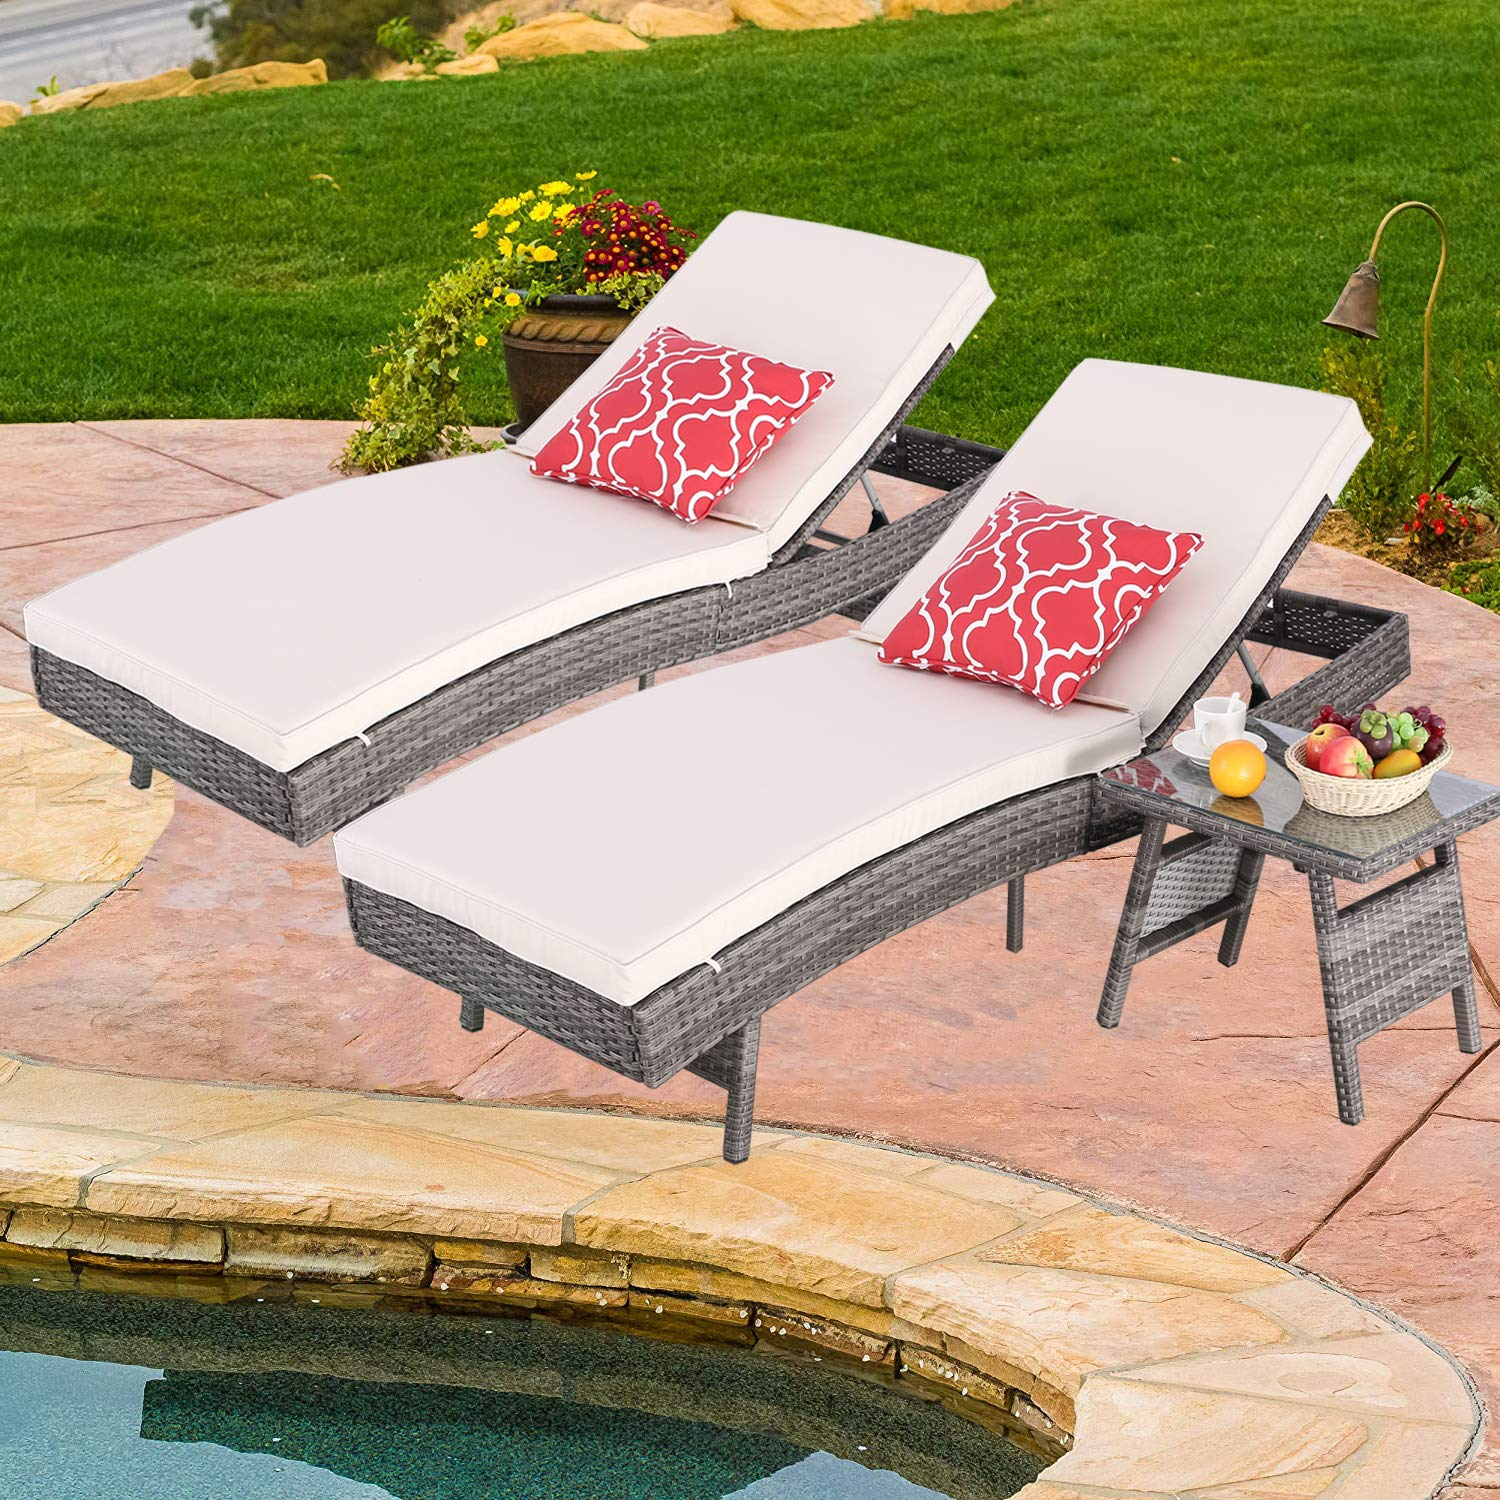 Do4U Adjustable Patio Outdoor Furniture Rattan Wicker Chaise Lounge Chair Sofa Couch Bed with Cushion and Table -2 Pcs Chaise Lounge and a Table (8667-DRGY-3 Pcs)